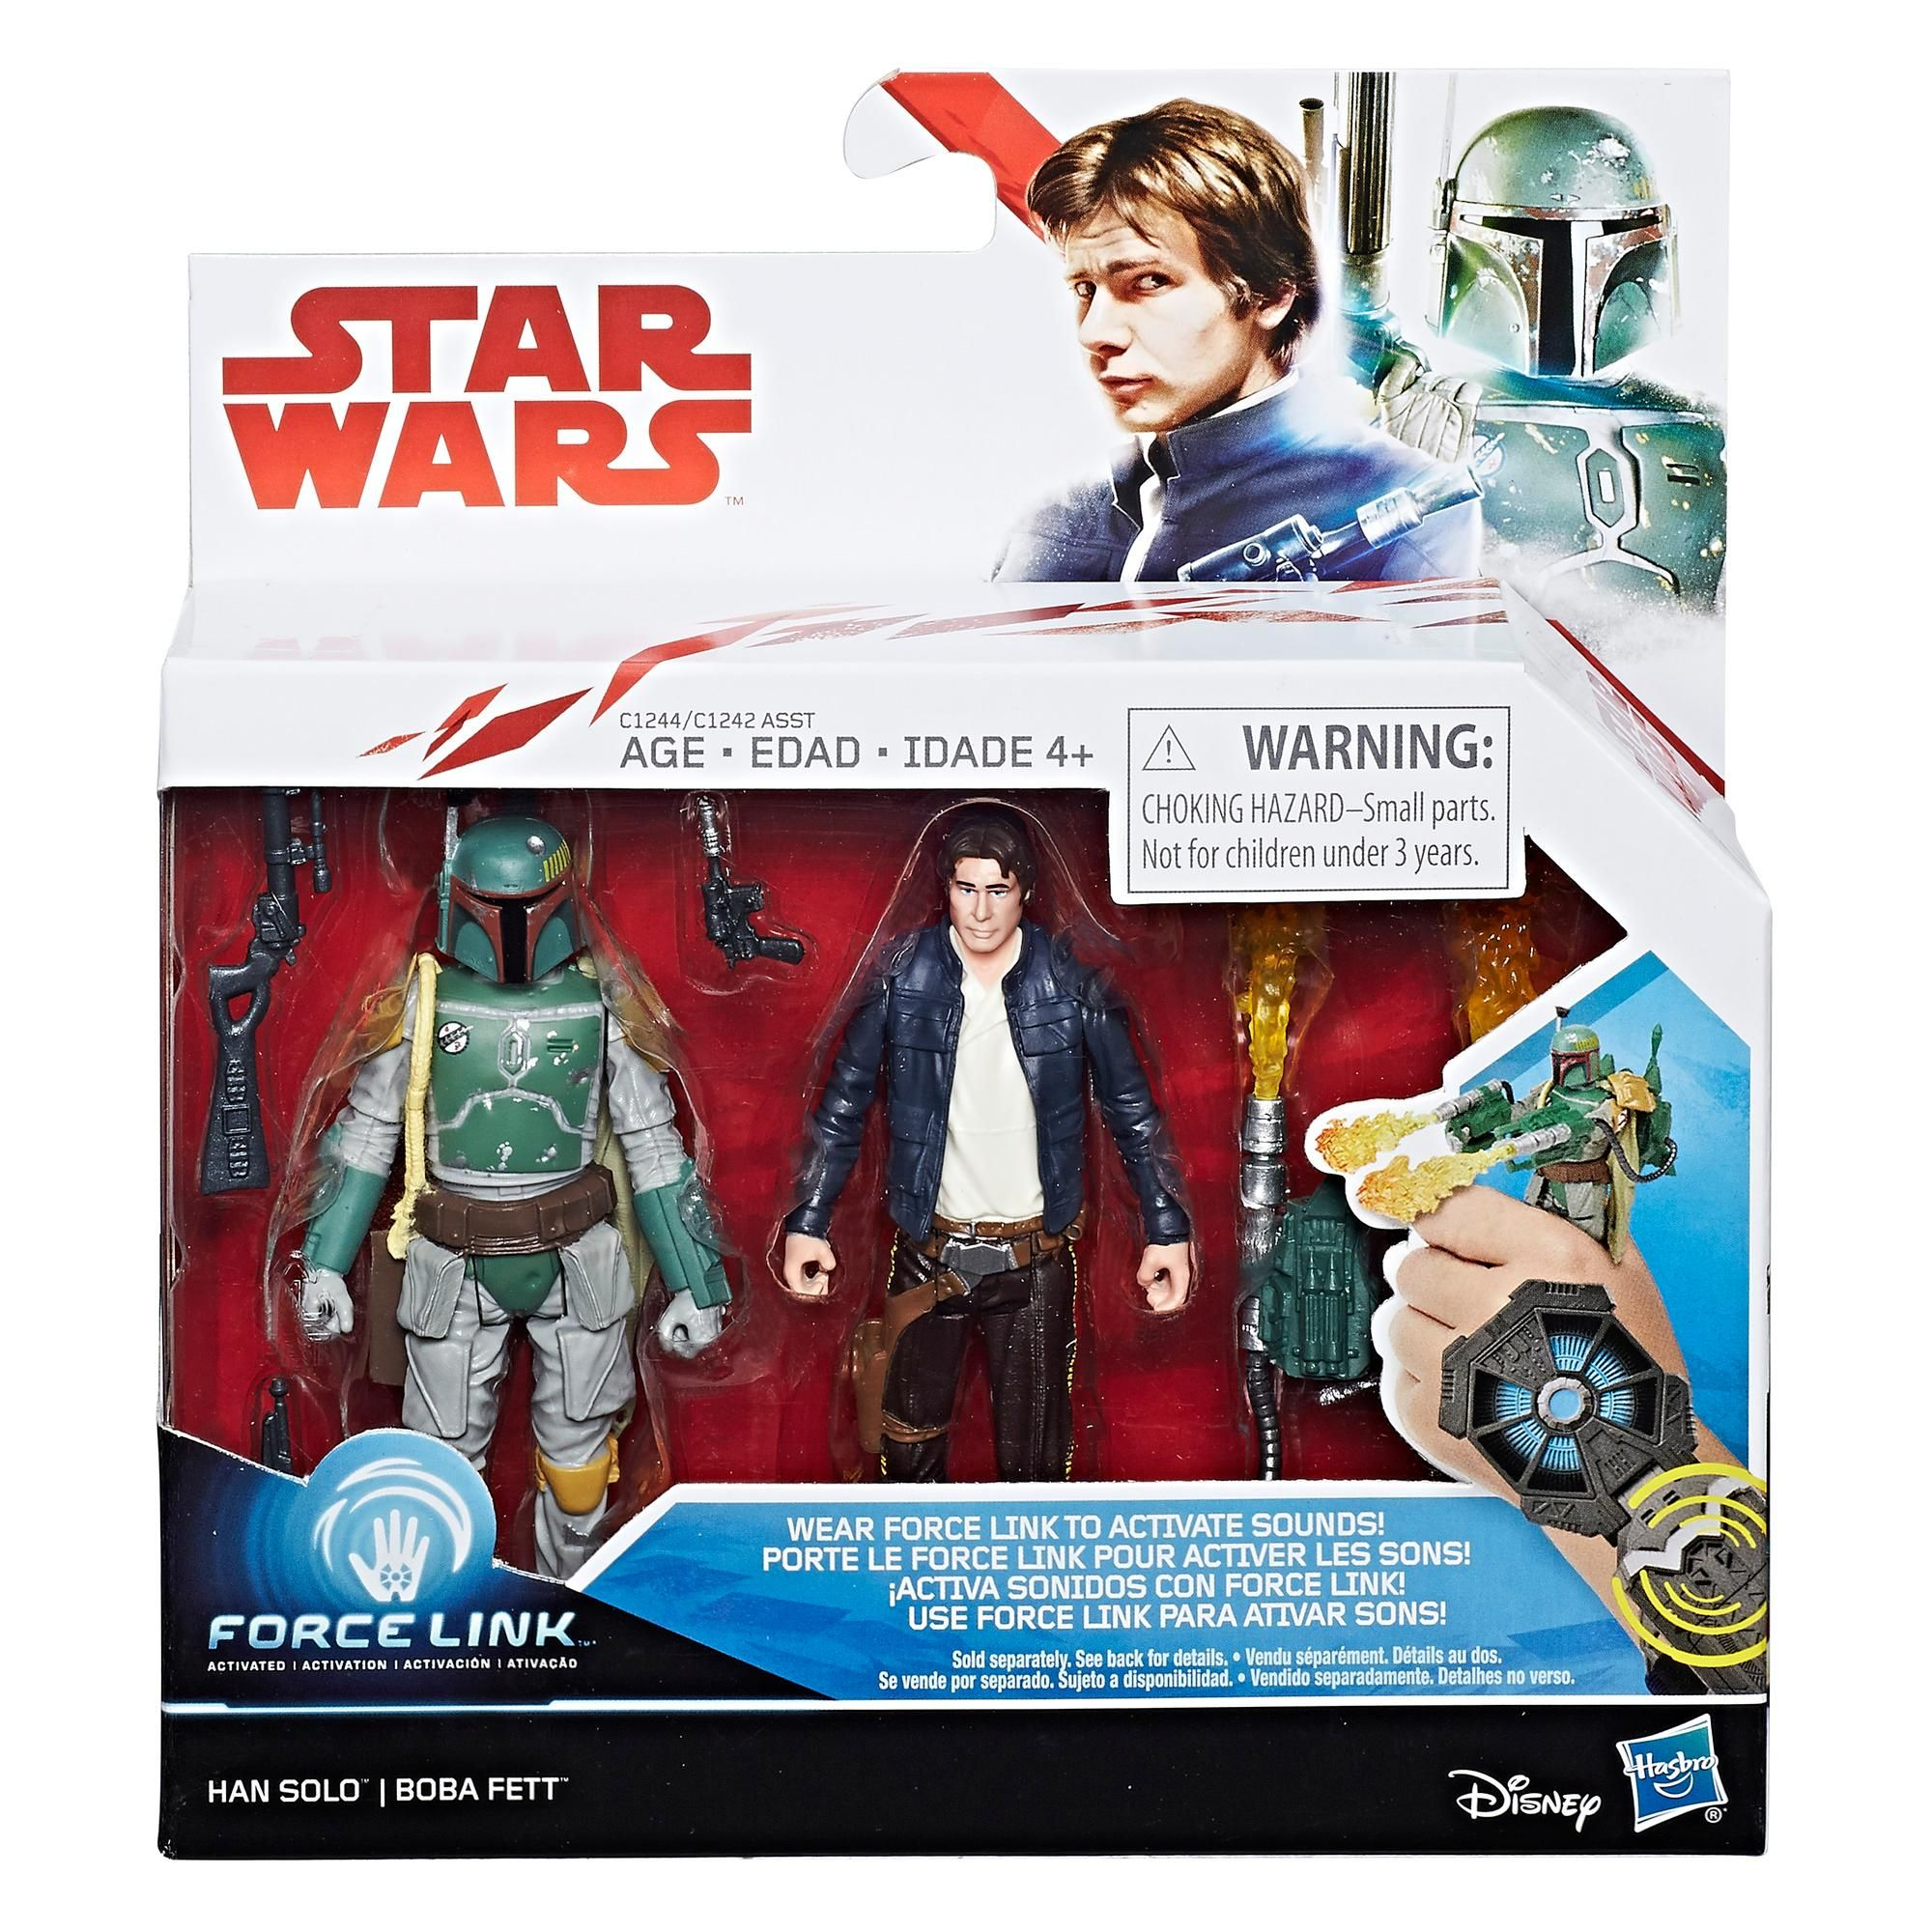 Star Wars action figures Han Solo and Boba Fett force link Hasbro Disney